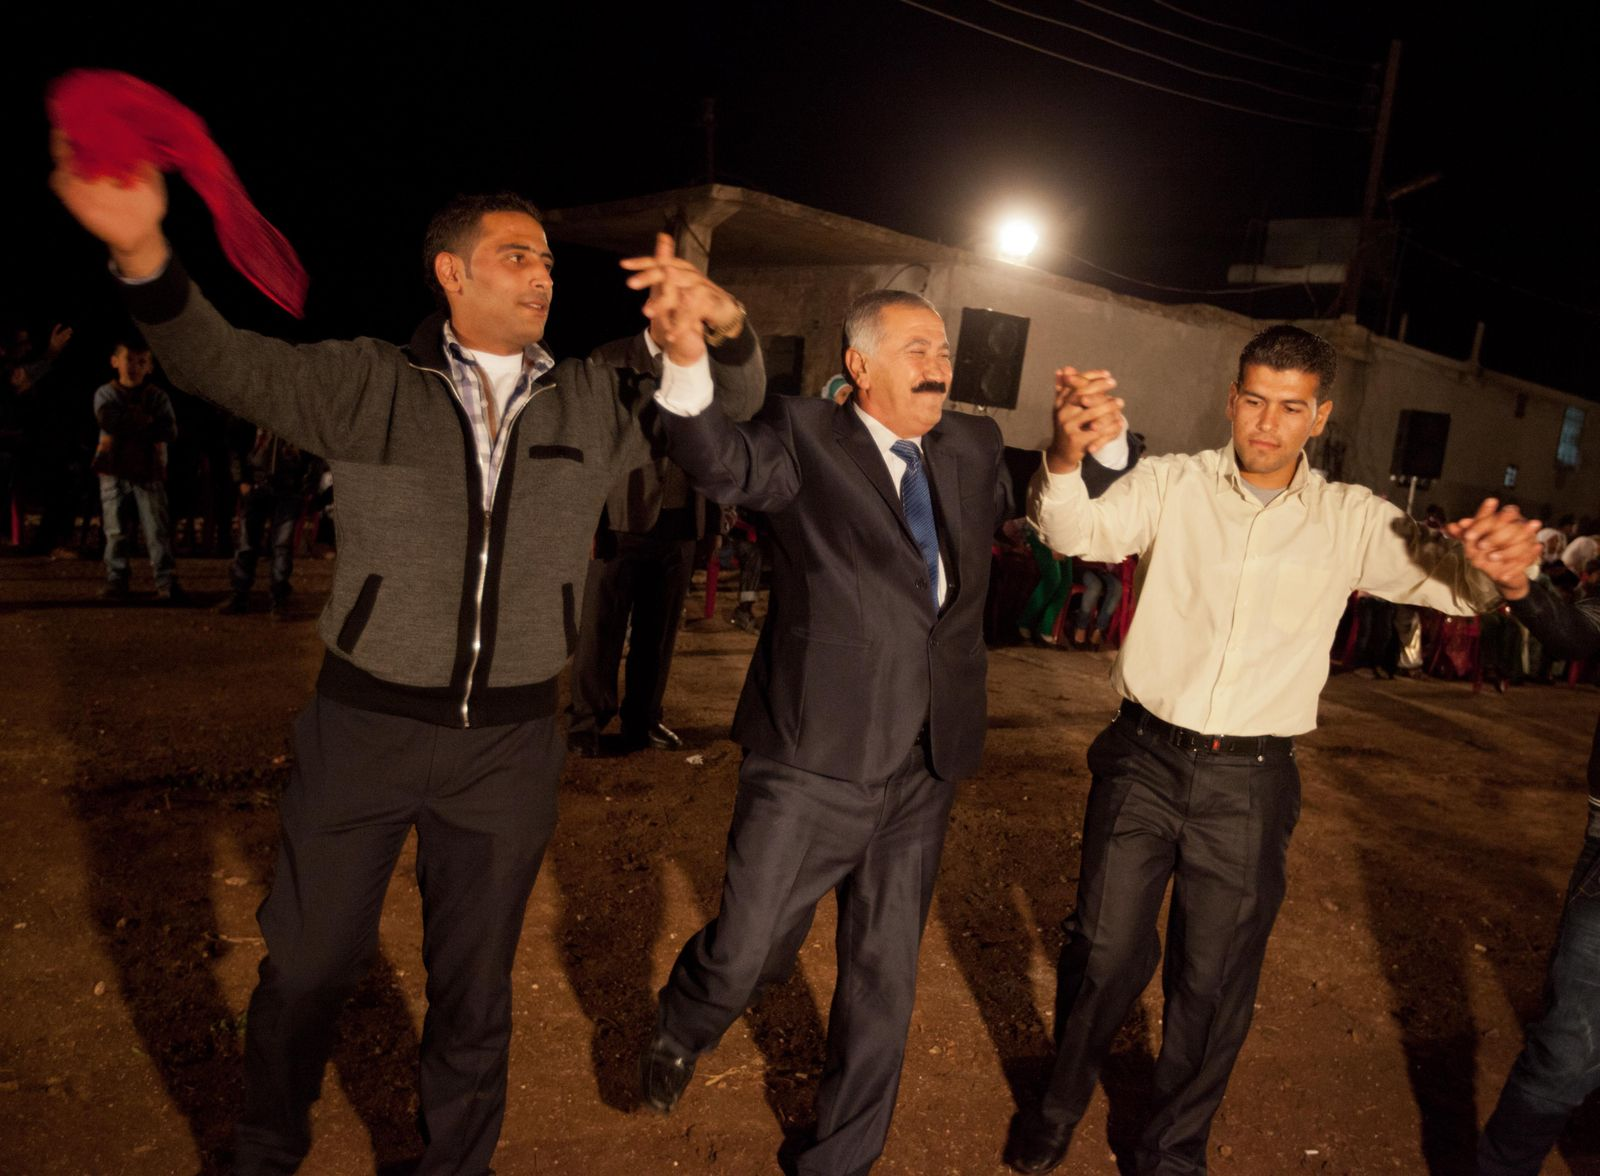 Men dance and play instruments during a Kurdish Sunni